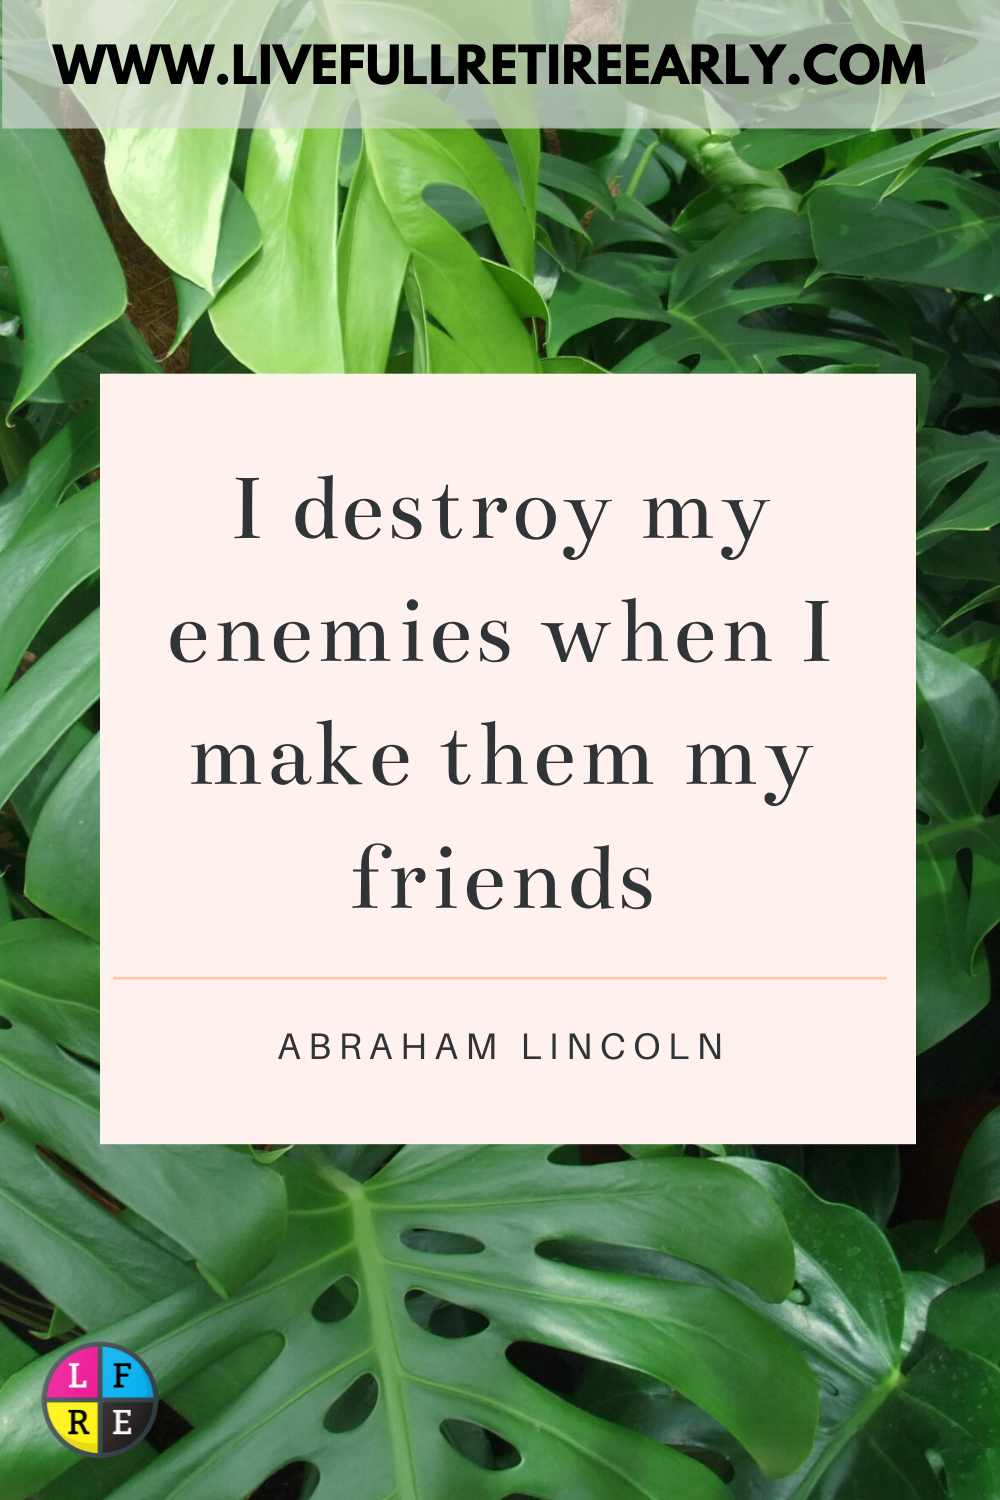 In times like this, all those little petty things we are once p1$$ed about now seems, minor and not important! Who else agrees? 🙋 #friends #friendshipquotes #friendshipgoals #enemies #killingwithkindness #kindnessmatters #kindness #livefullretireearly #liveyourlifetothefullest #bekind #happinessbegins #happinessproject #happylifequotes #positivevibes #positivevibesonly #successmindset #successquotes #successfullifestyle #lifestyleblogger #pettyquotes #forgivenessquotes #forgivenessisfre